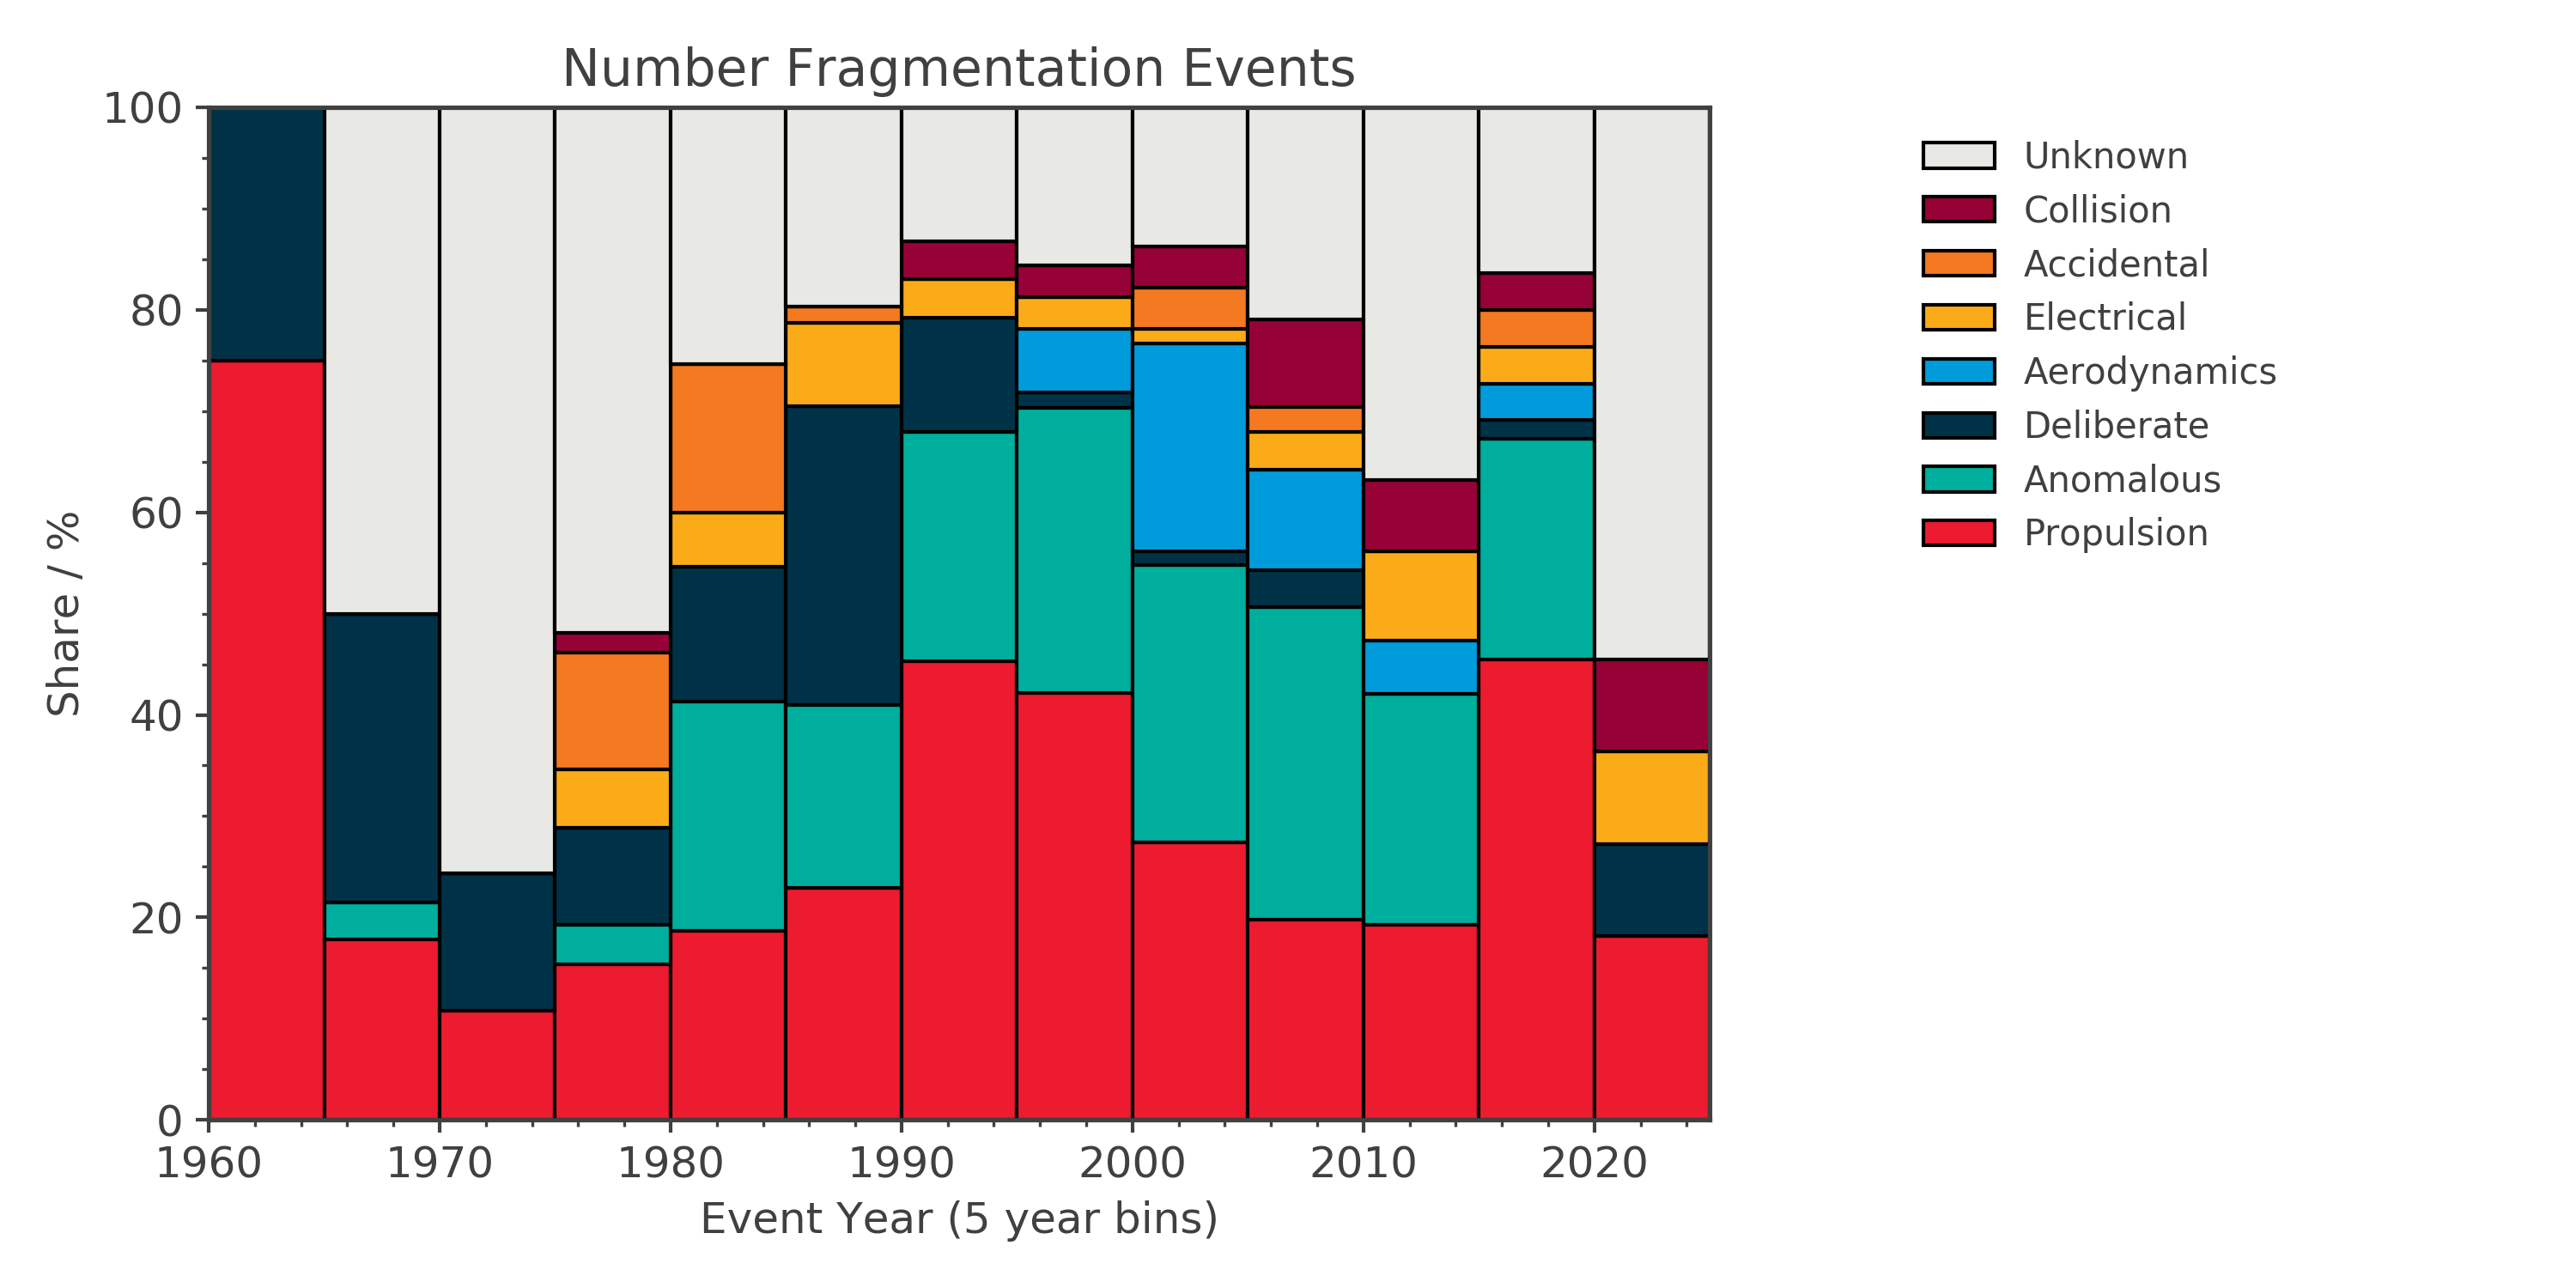 Share of fragmentation causes over time